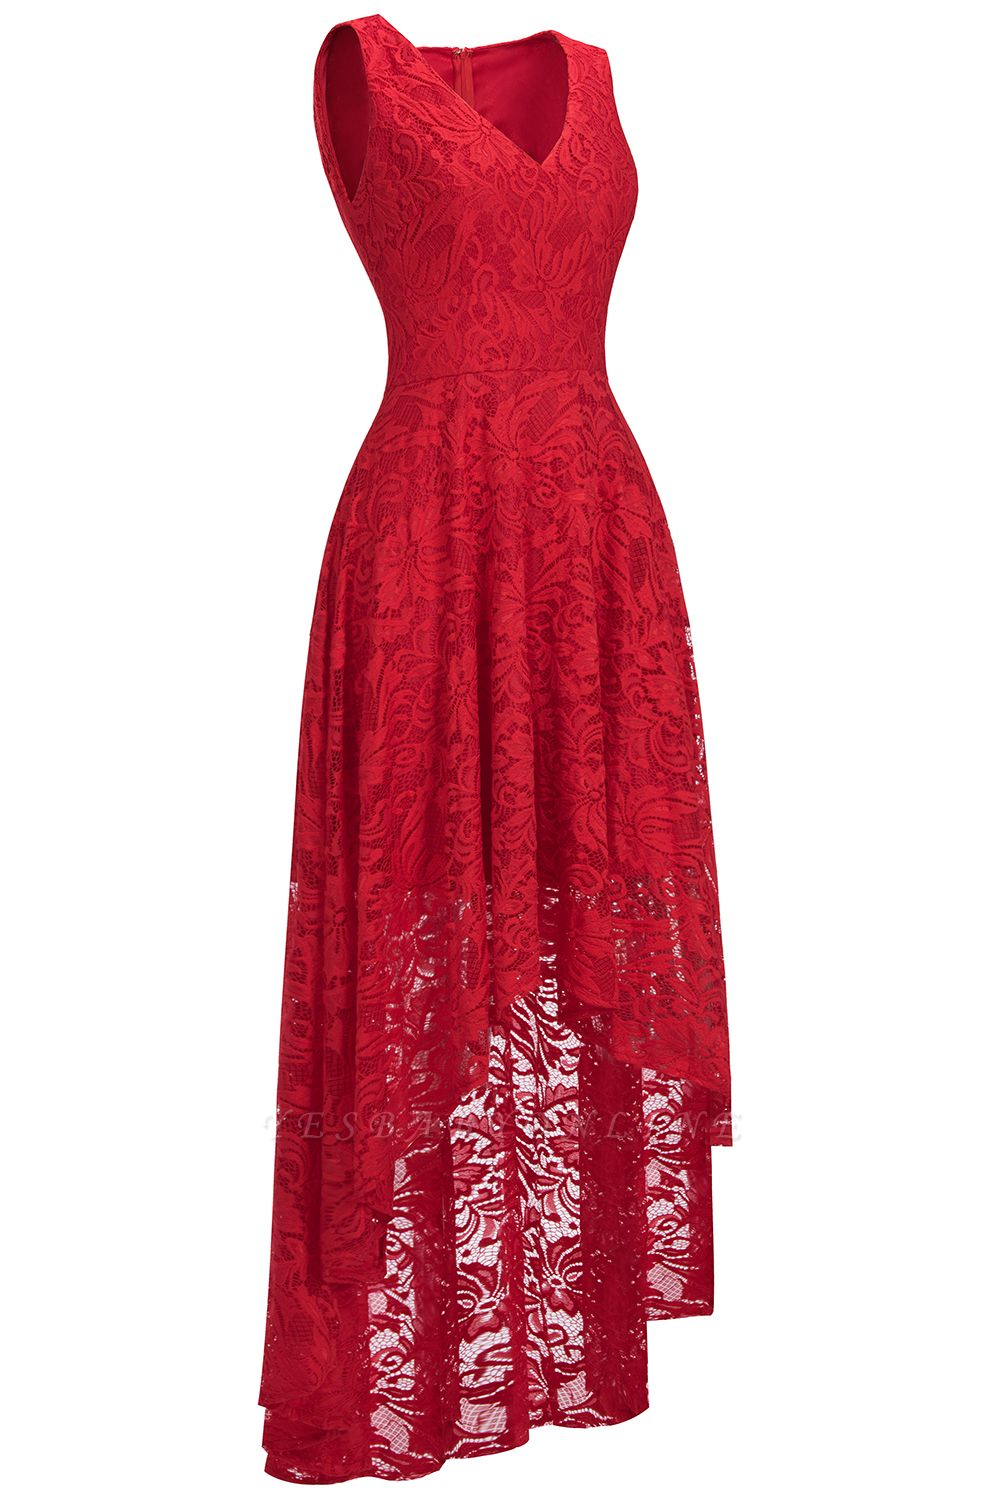 Cheap A-line Hi-lo V-neck Sleeveless Burgundy Lace Dress in Stock